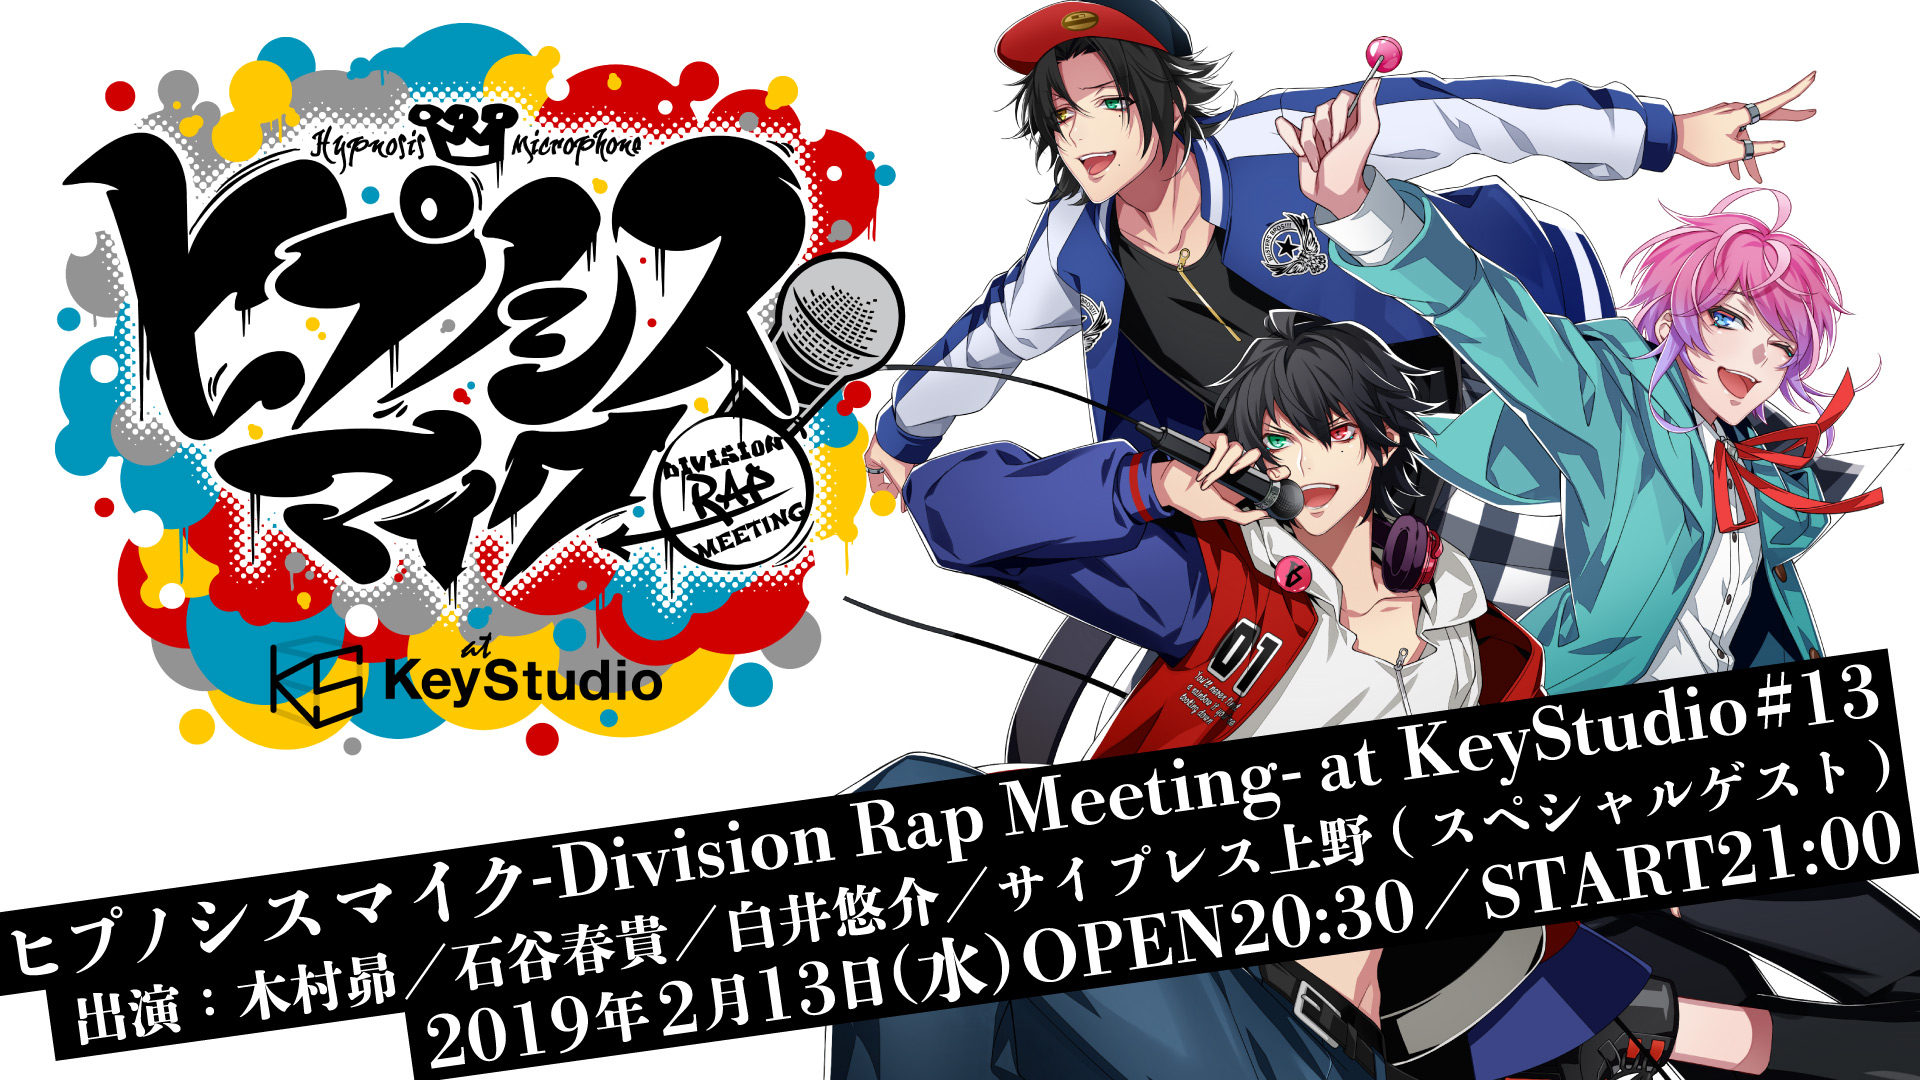 ヒプノシスマイク -Division Rap Meeting- at KeyStudio #13